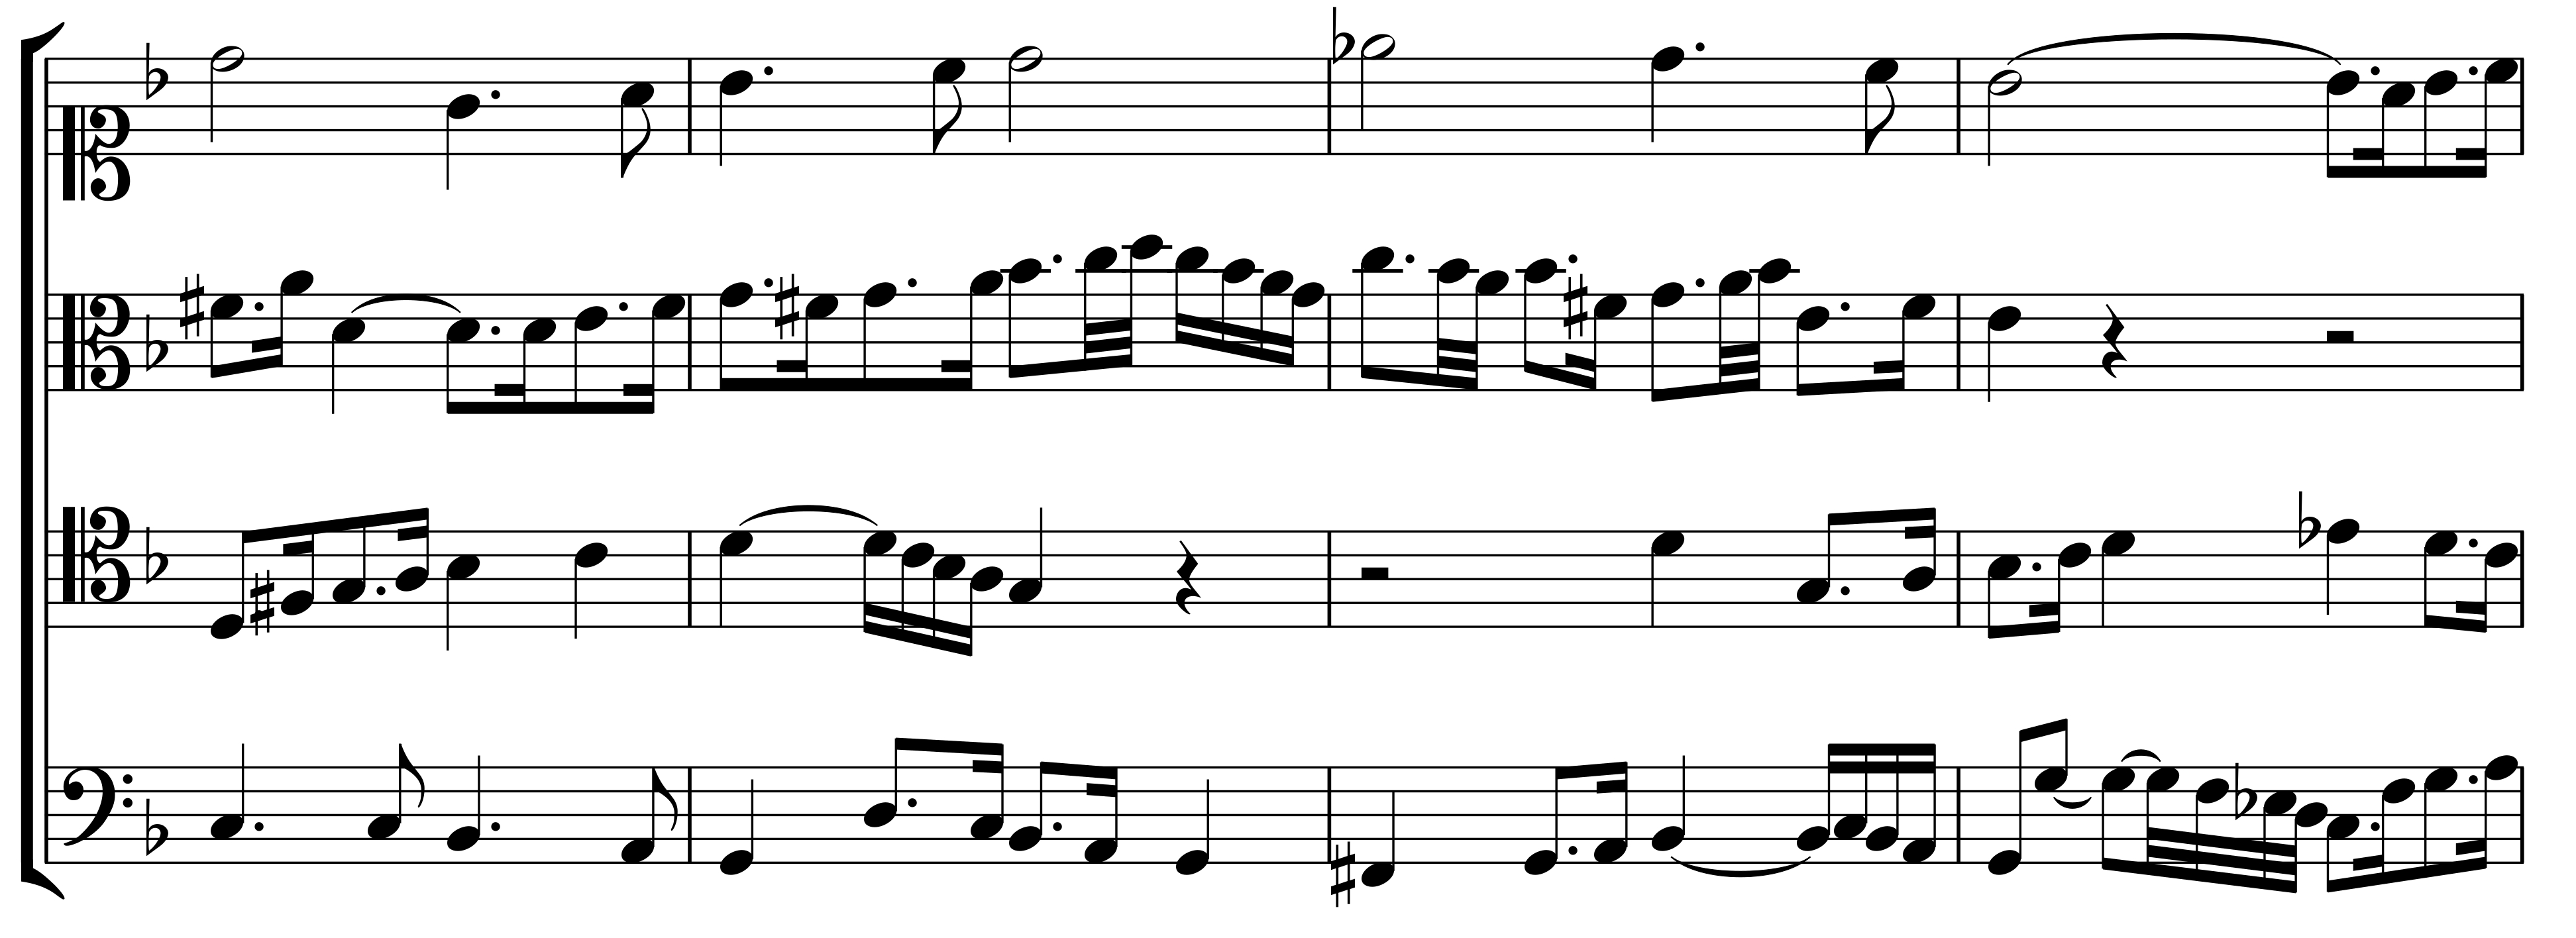 Figure 13b: <em>Contrapunctus</em> 6, bars 35–38 of the voices (reversion); fugues 12a, b and 13a, b.